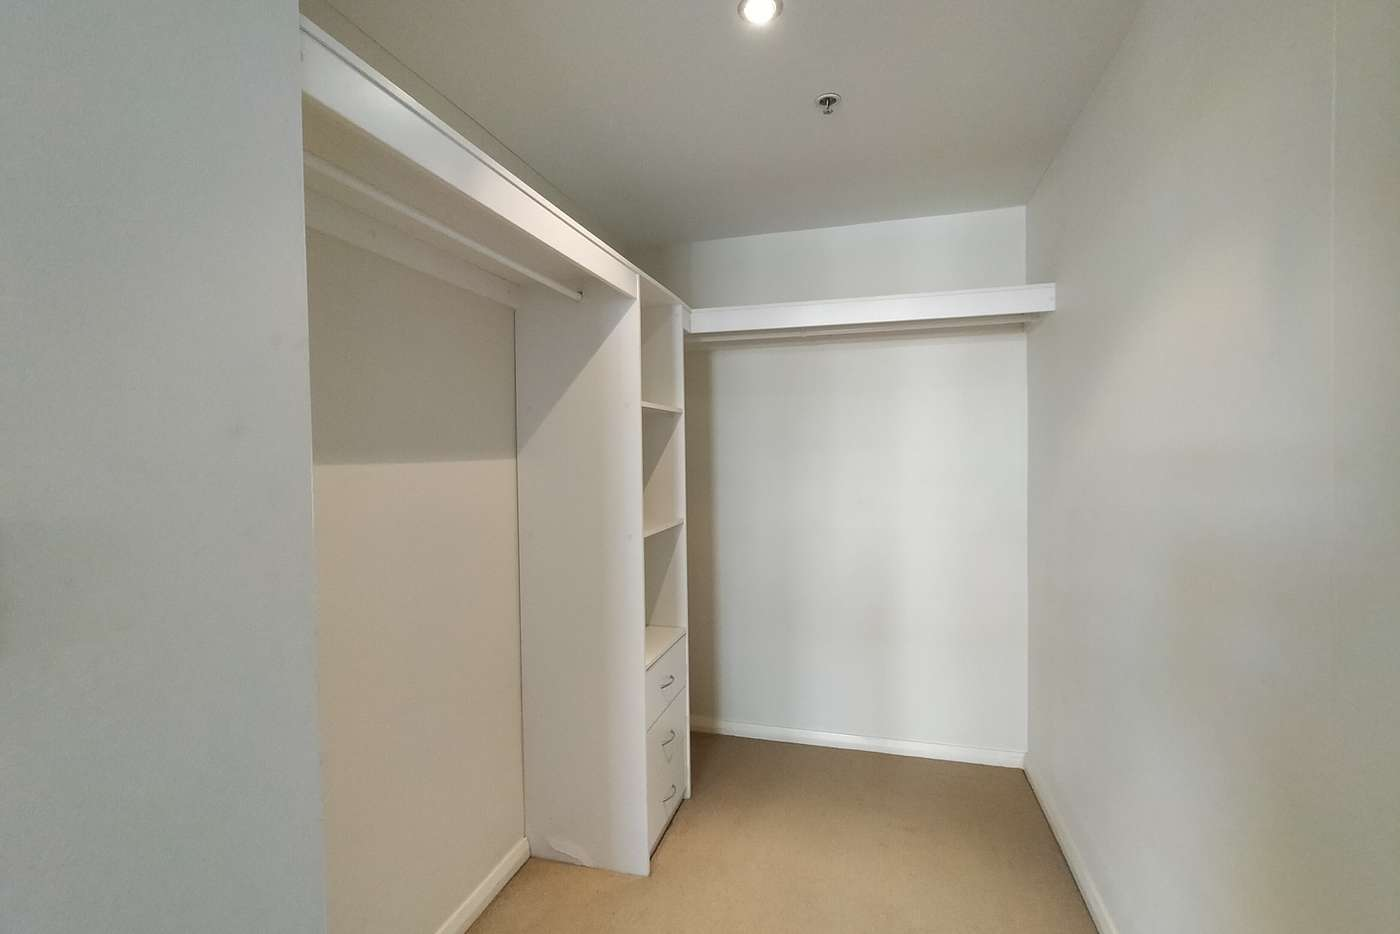 Seventh view of Homely apartment listing, 20/7 Bourke Street, Mascot NSW 2020